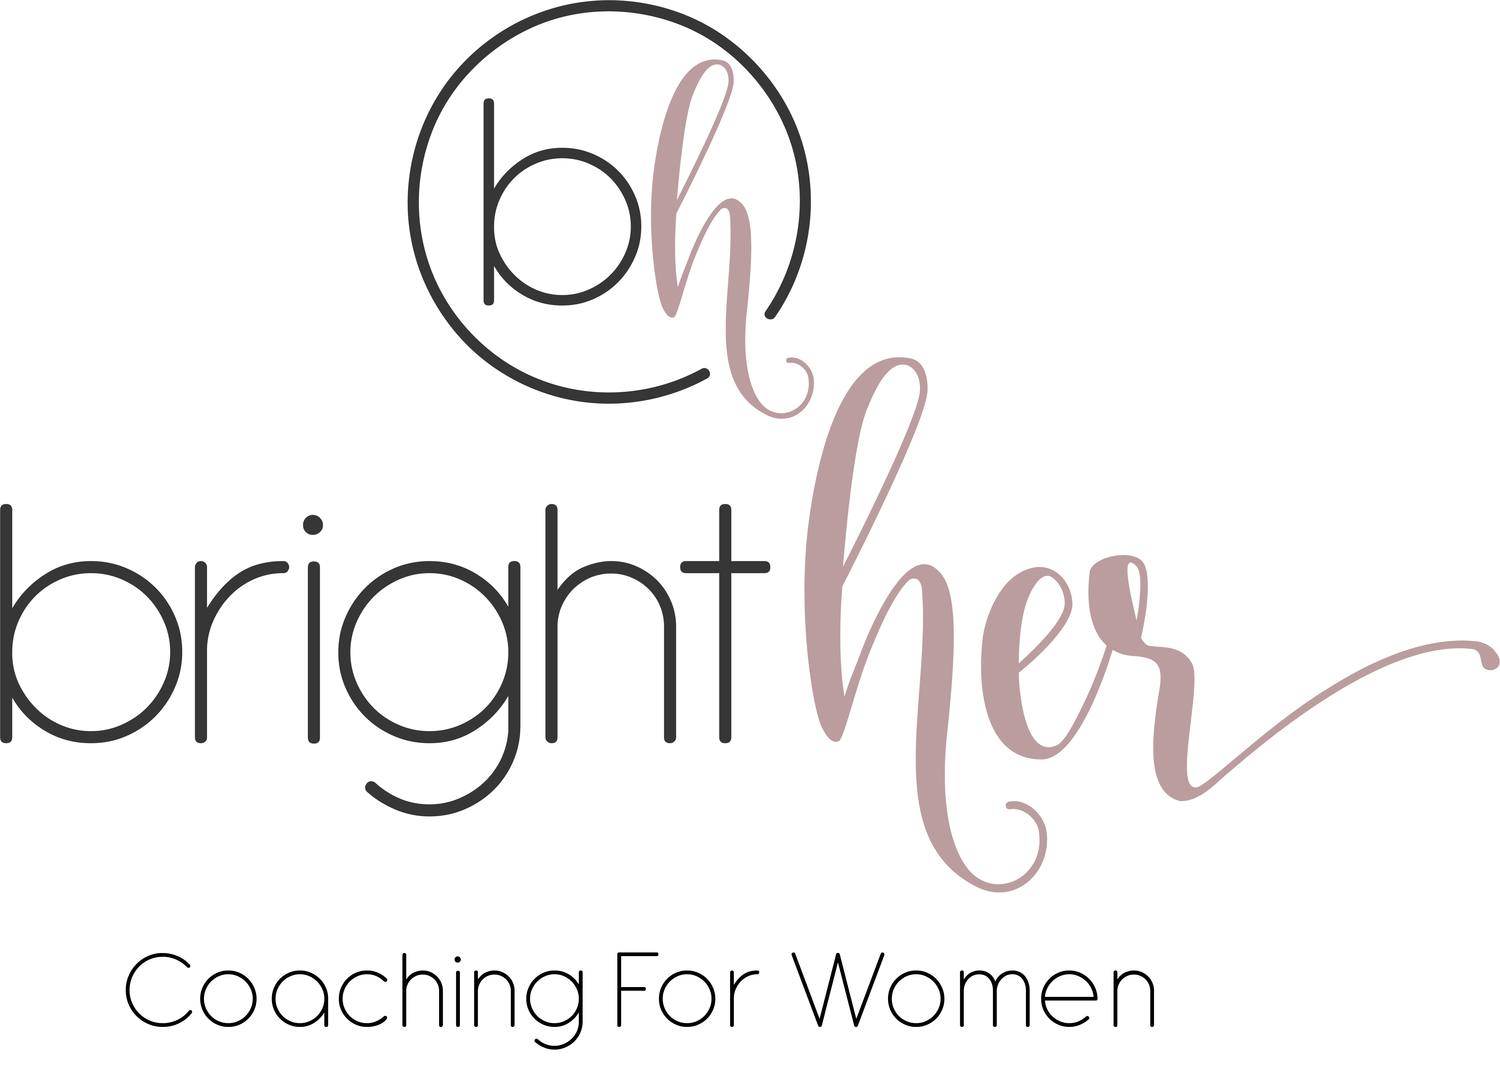 BrightHer | Coaching For Women